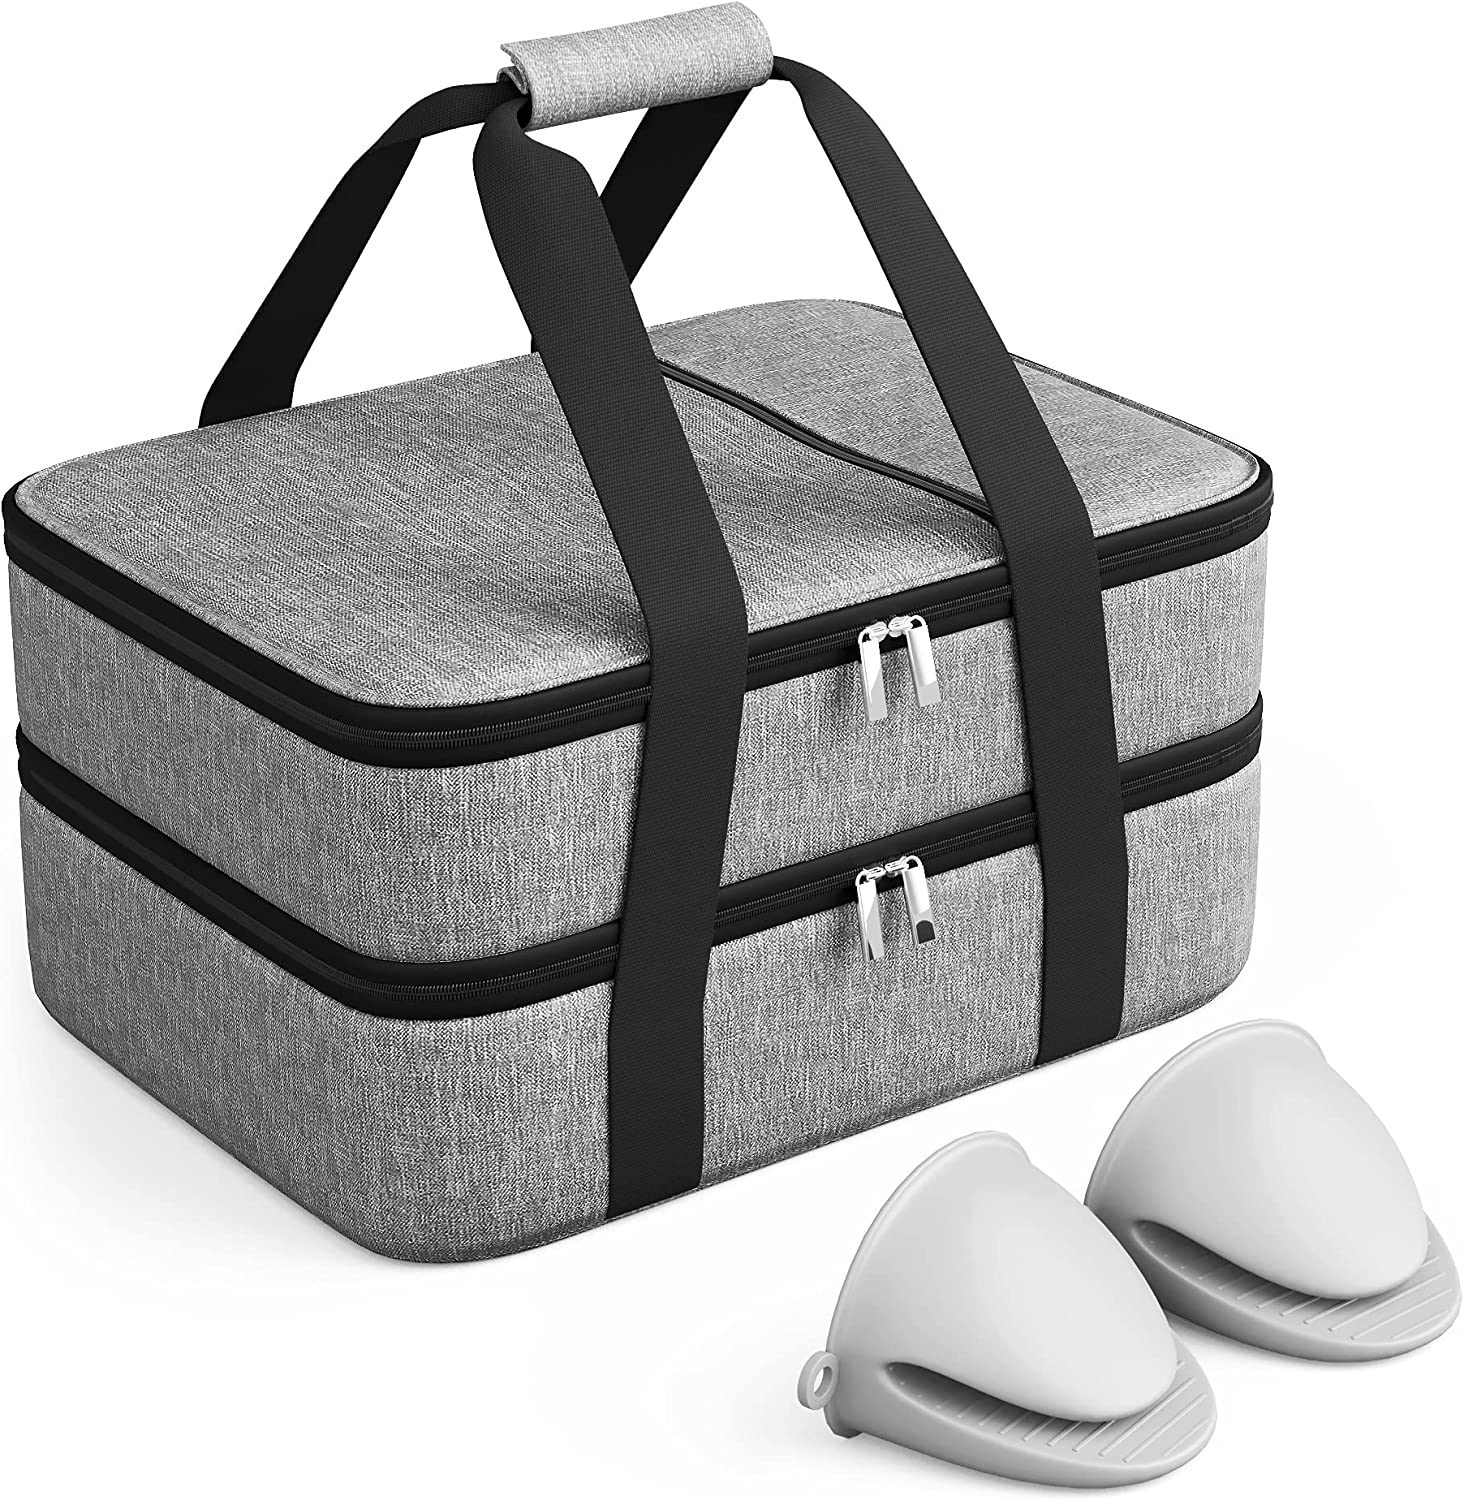 Double Decker Insulated Casserole Carrier bundled with Silicone Hand Protectors, For Hot or Cold Food, Insulated Bag, Thermal Lunch Tote, Lasagna Holder, For Potluck/Parties/Picnic, Grey